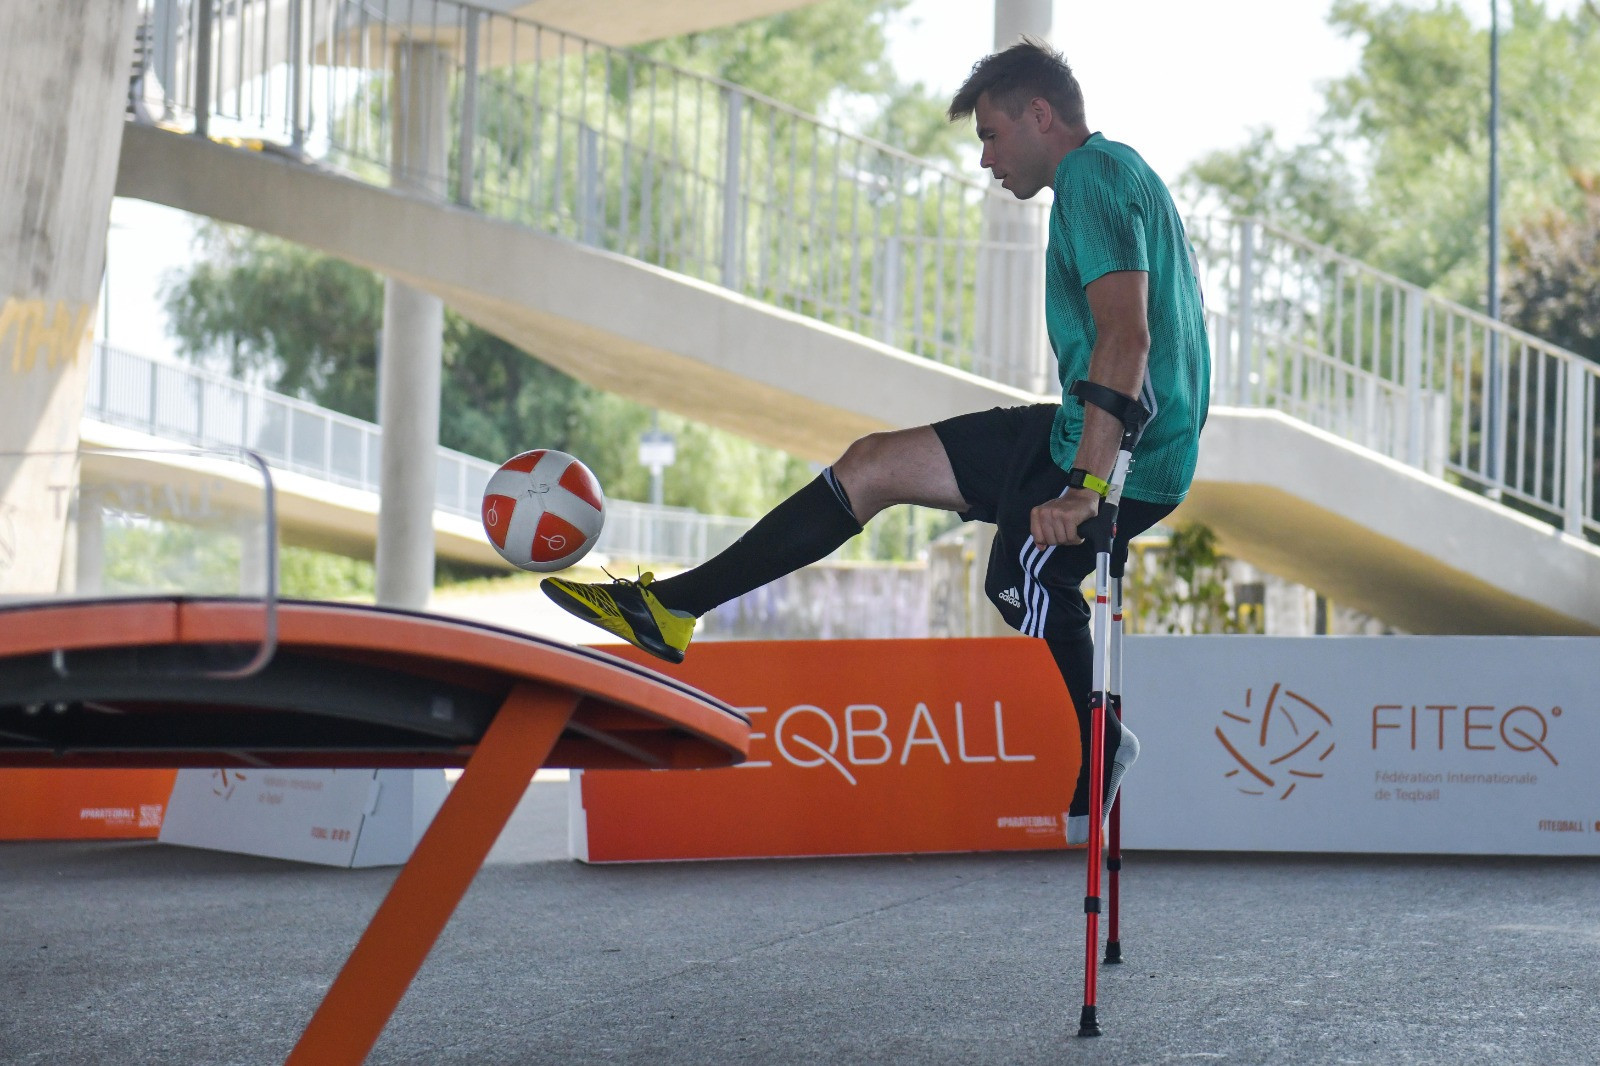 Amputee players from Legia Warsaw attended the Para teqball event ©FITEQ